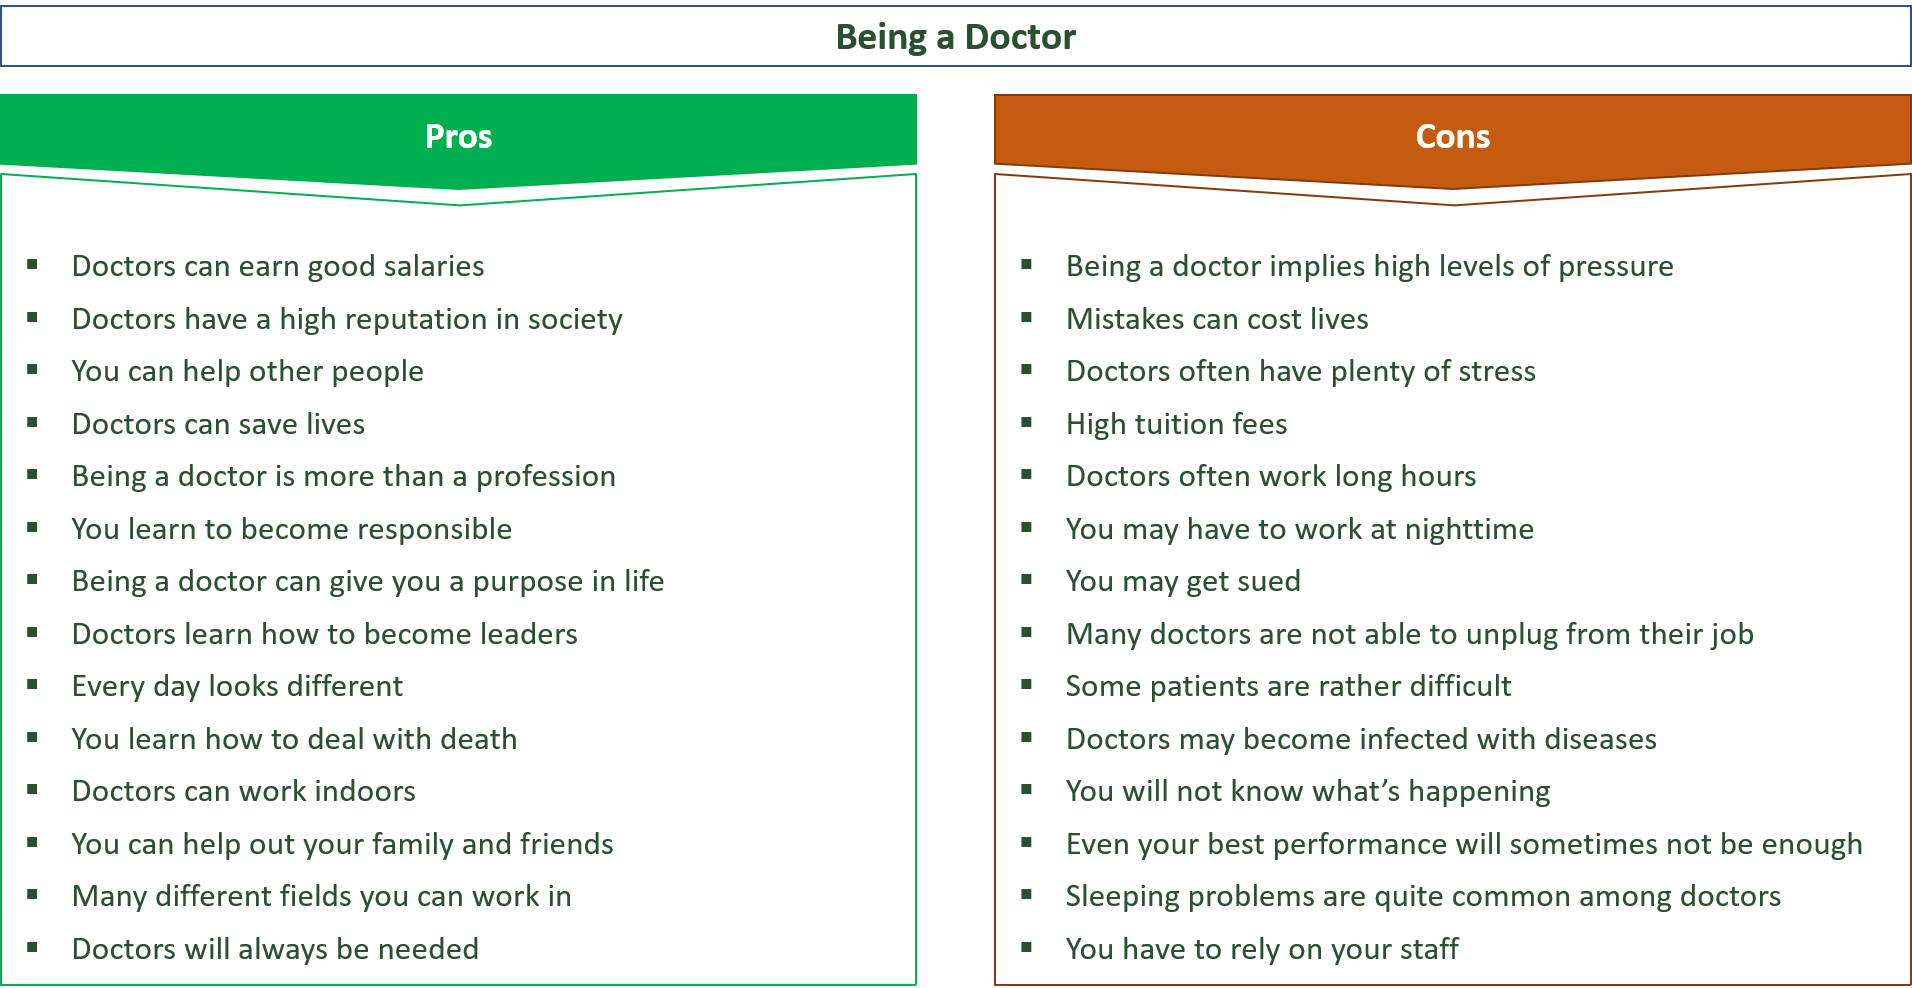 advantages and disadvantages of being a doctor